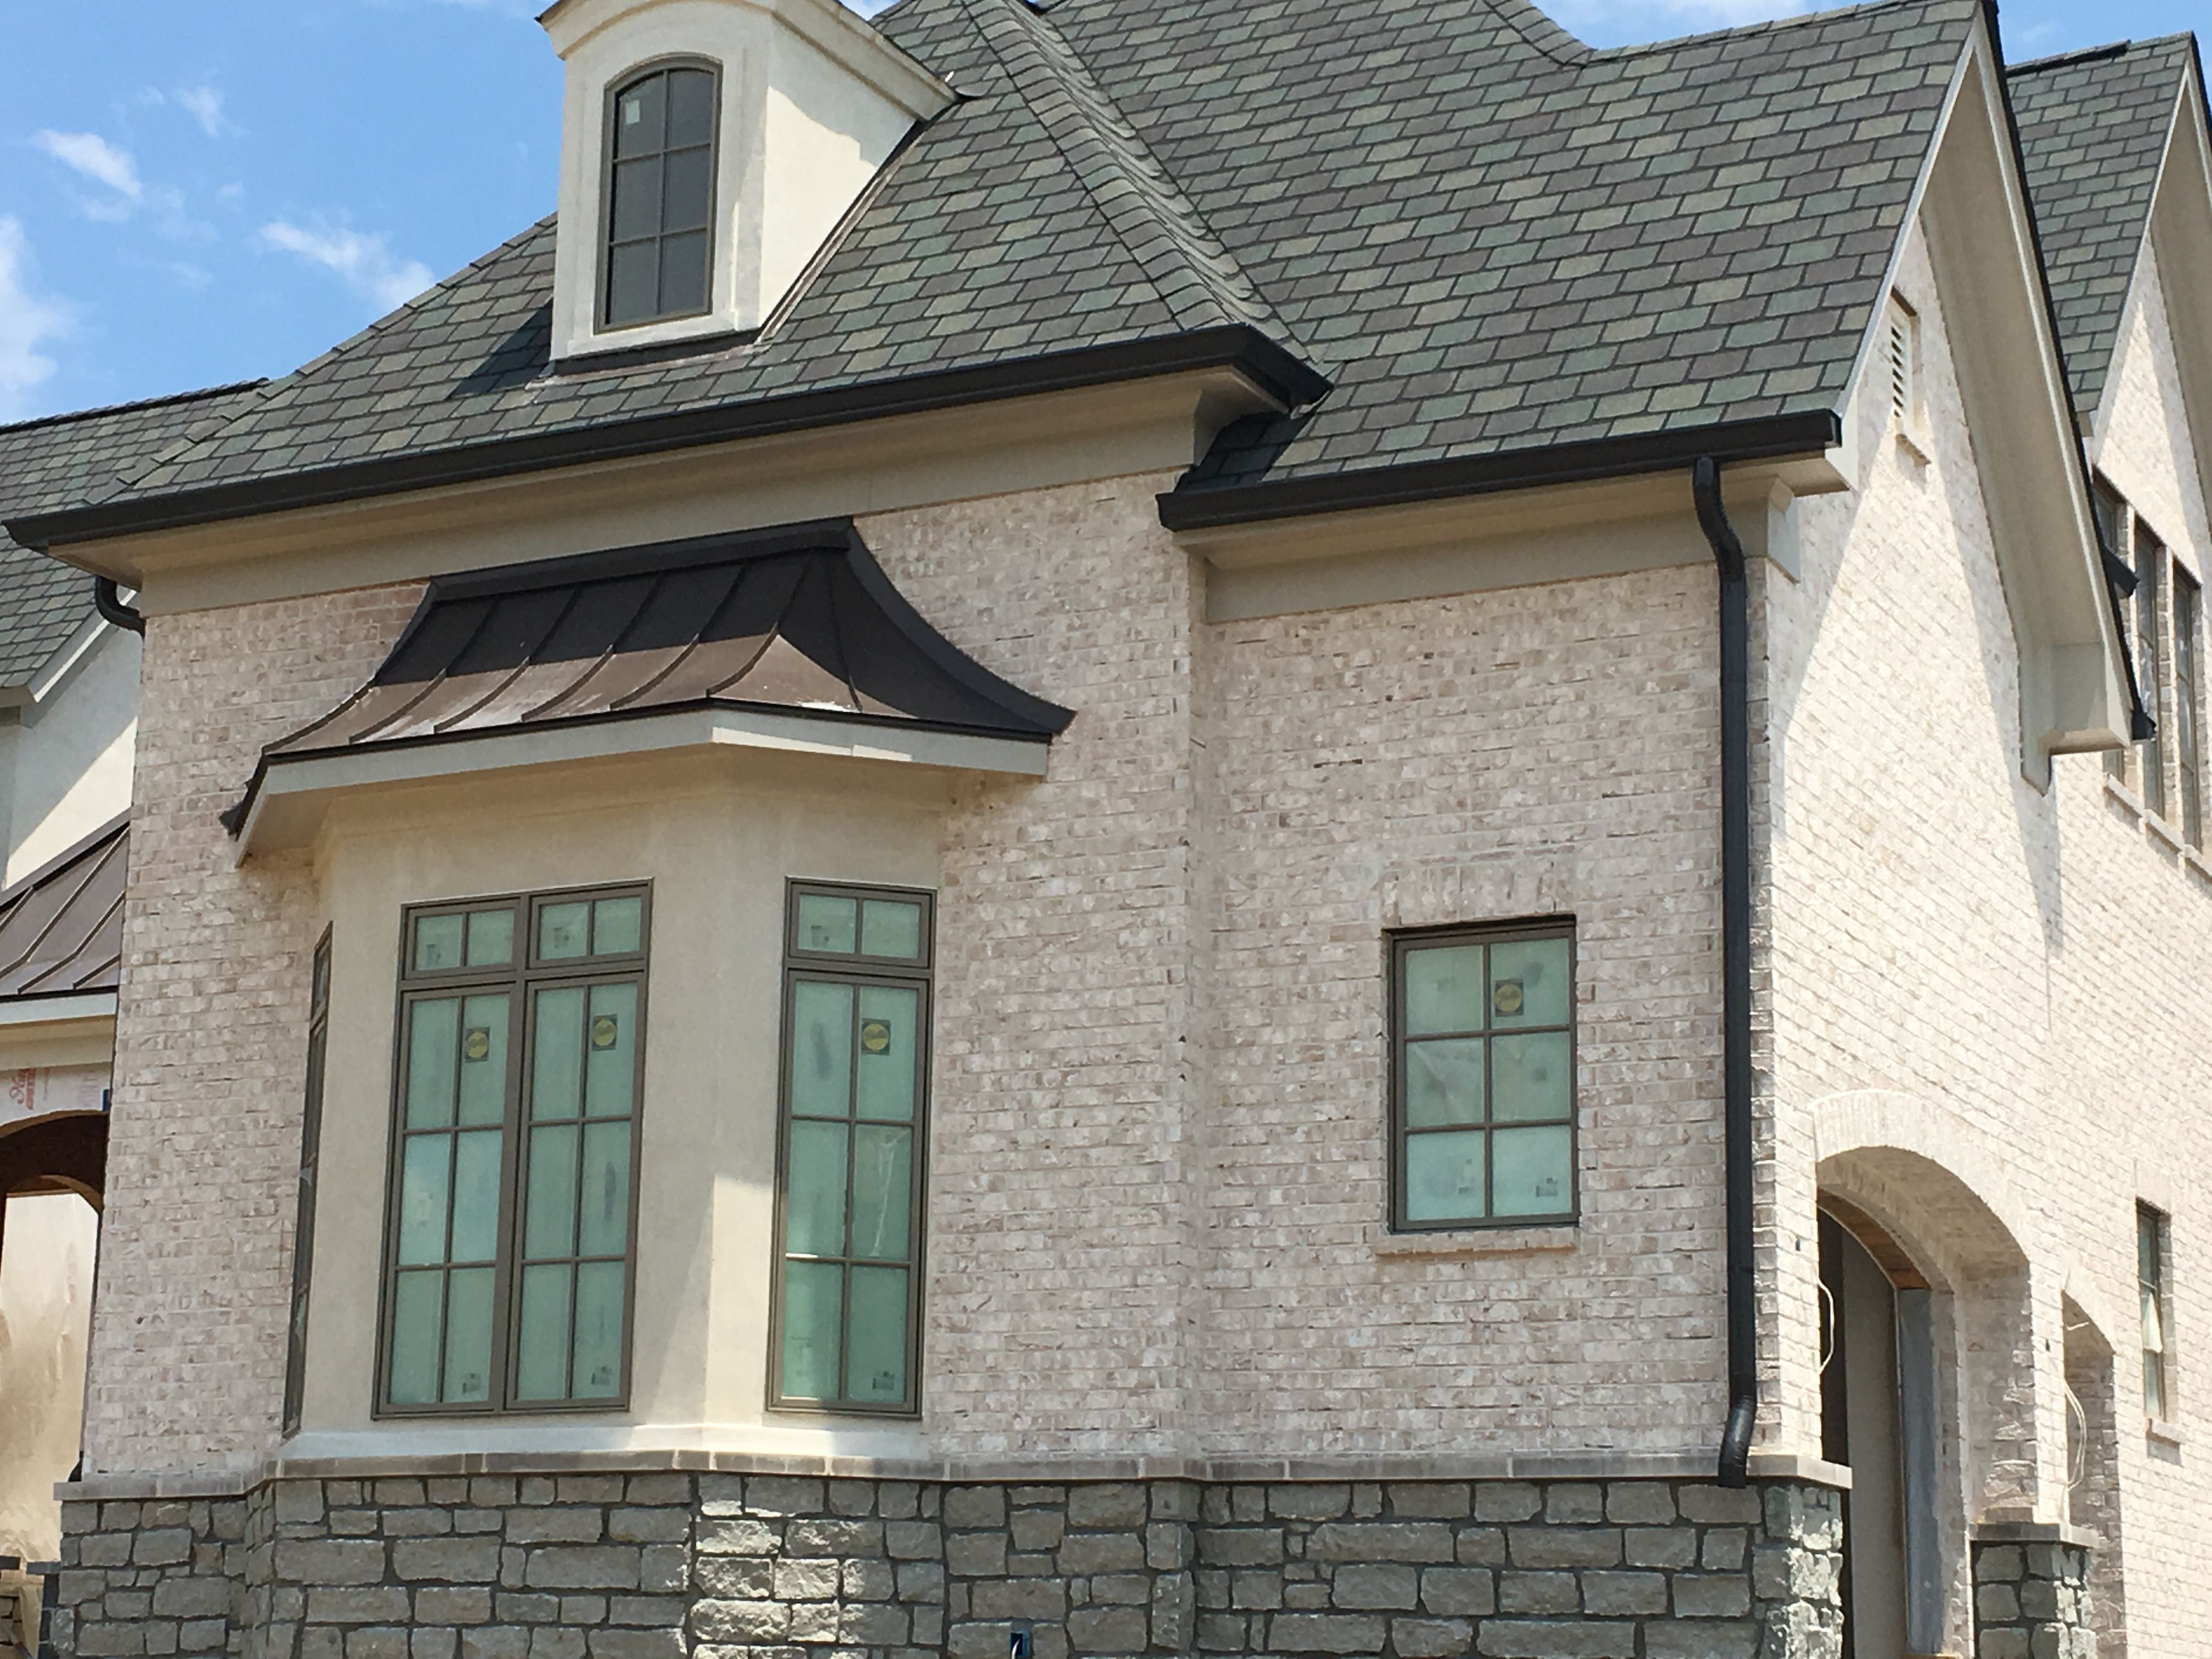 Brick and mortar selections only williamsburg birchwood for Brick selection for houses